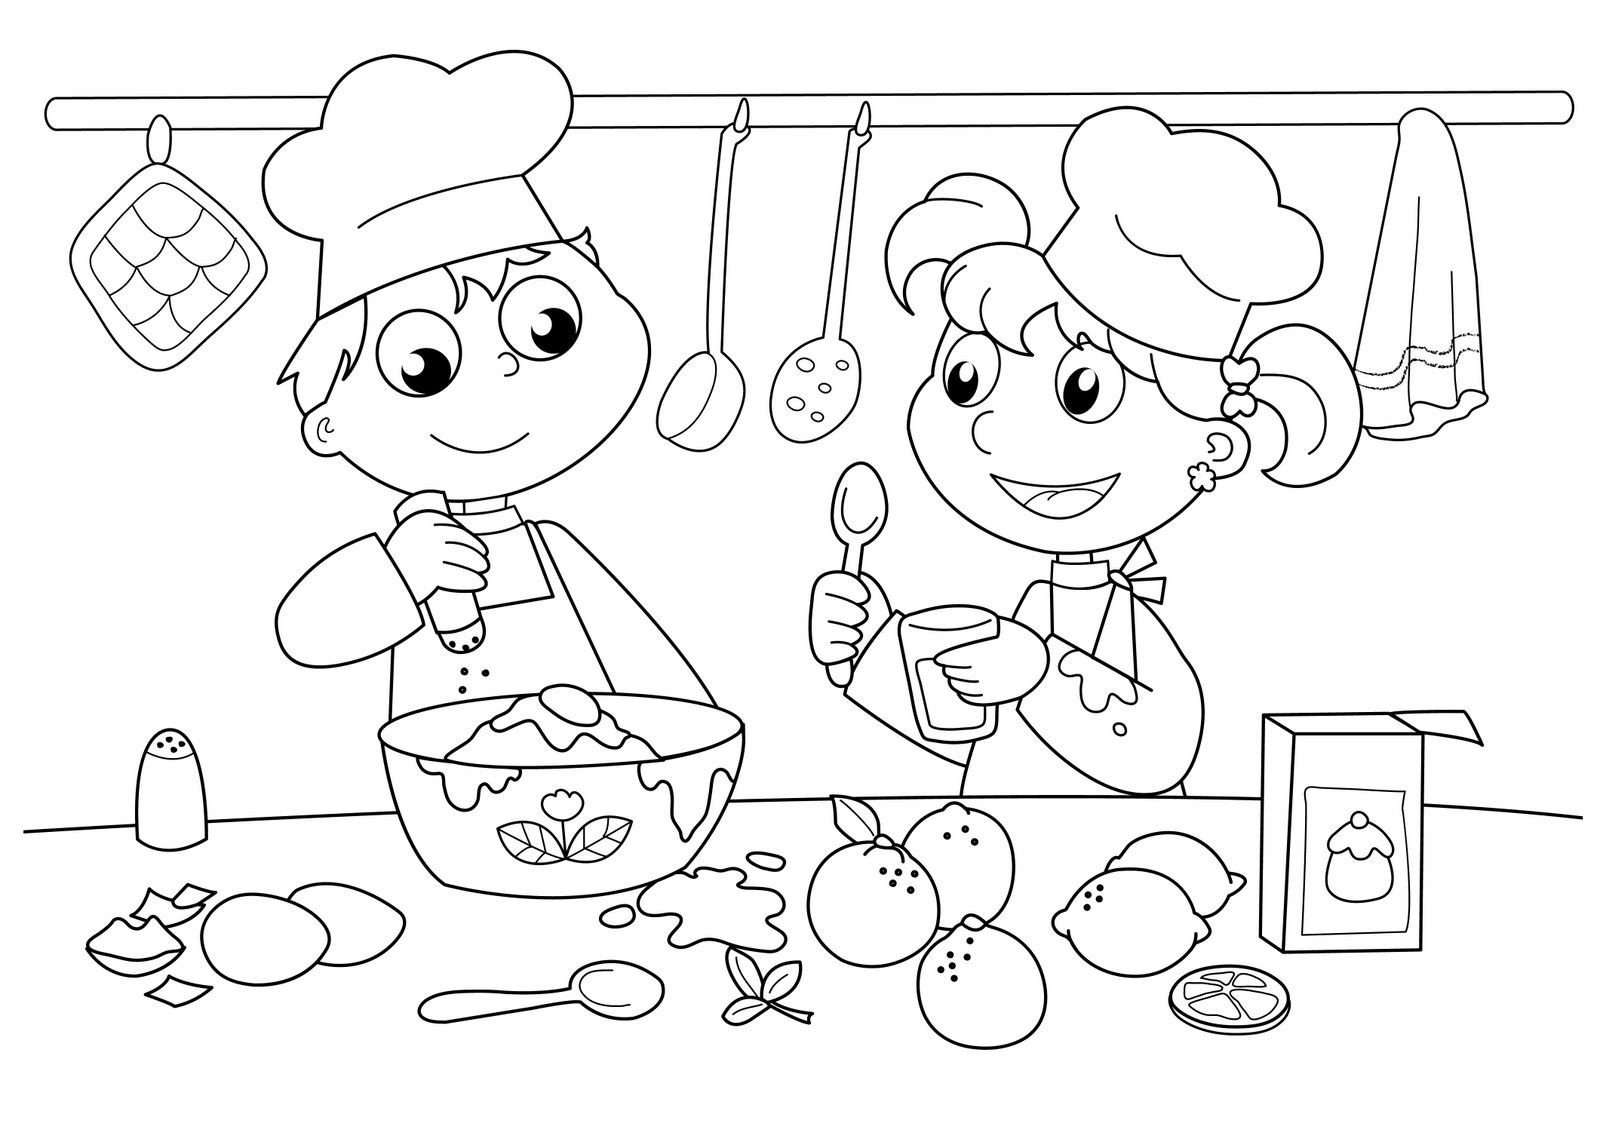 Baking Bread Colouring Pages Kb Courtesy Passover Pictures Color